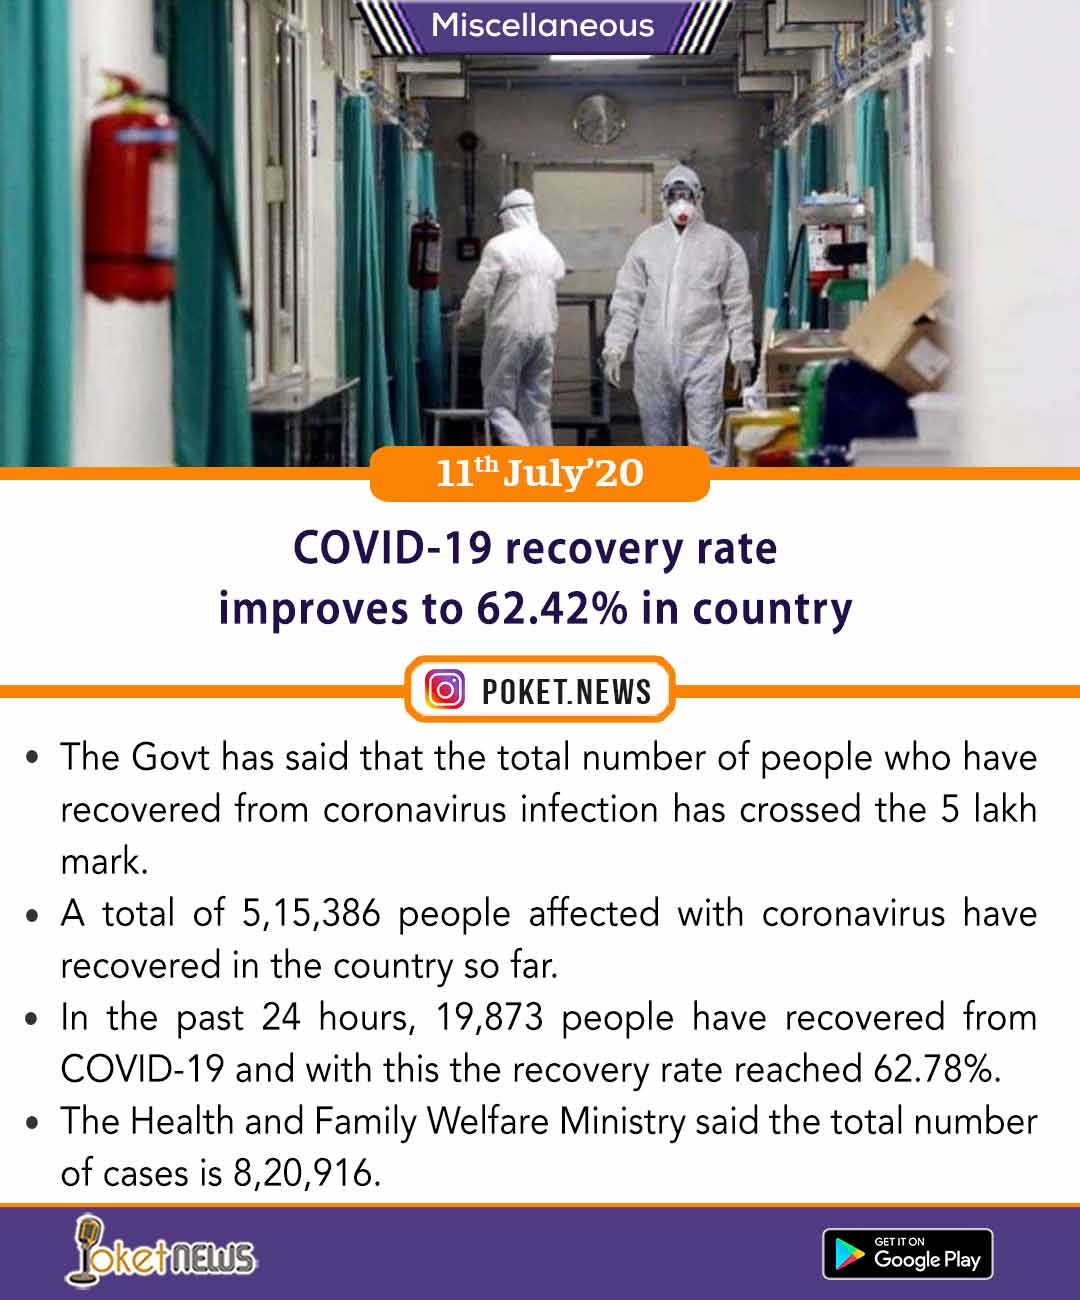 COVID-19 recovery rate improves to 62.42% in country